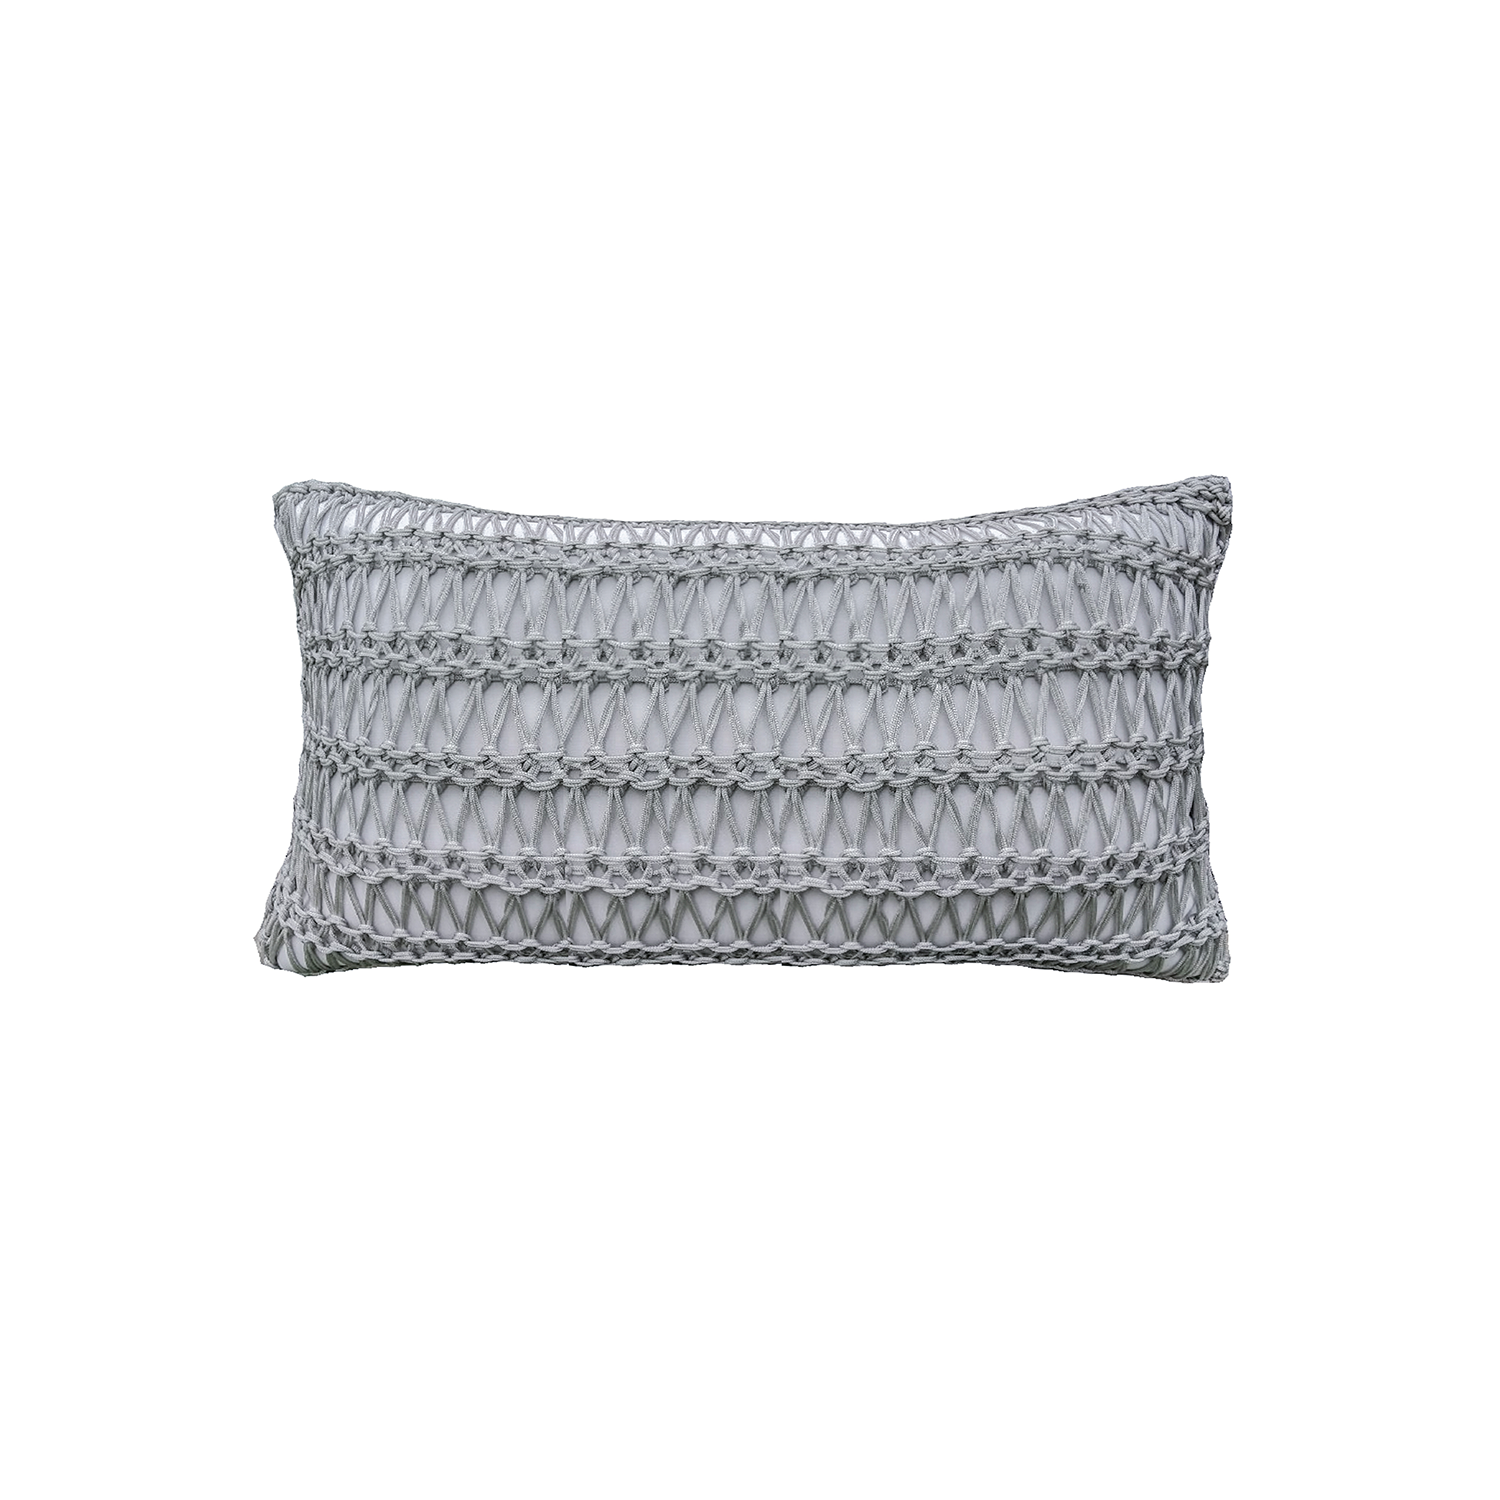 Veleiro Neo Cushion Large - The Veleiro Neo Cushion is carefully knitted within a trained community of women that found in their craft a way to provide for their families. The outdoor collection is made with synthetic fibres, resistant to weather exposure. The use of neoprene brings comfort and technology to the cushions.  The front panel is in neoprene combined with hand woven nautical cord, made in Brazil.  The inner cushion is in Hollow Fibre, made in the UK.  Please enquire for more information and see colour chart for reference.  | Matter of Stuff